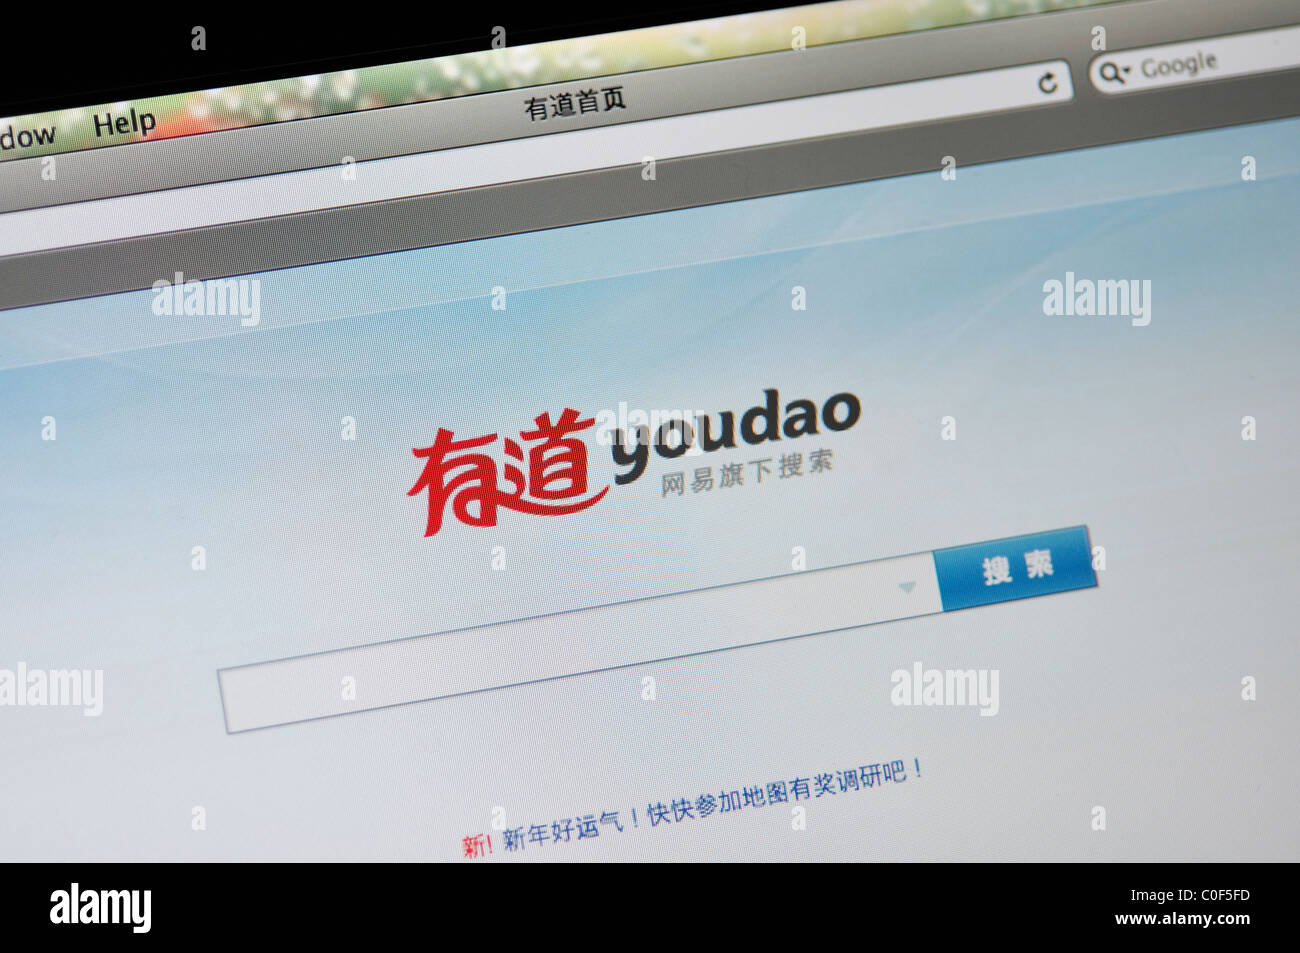 Youdao - Chinese search engine website - Stock Image